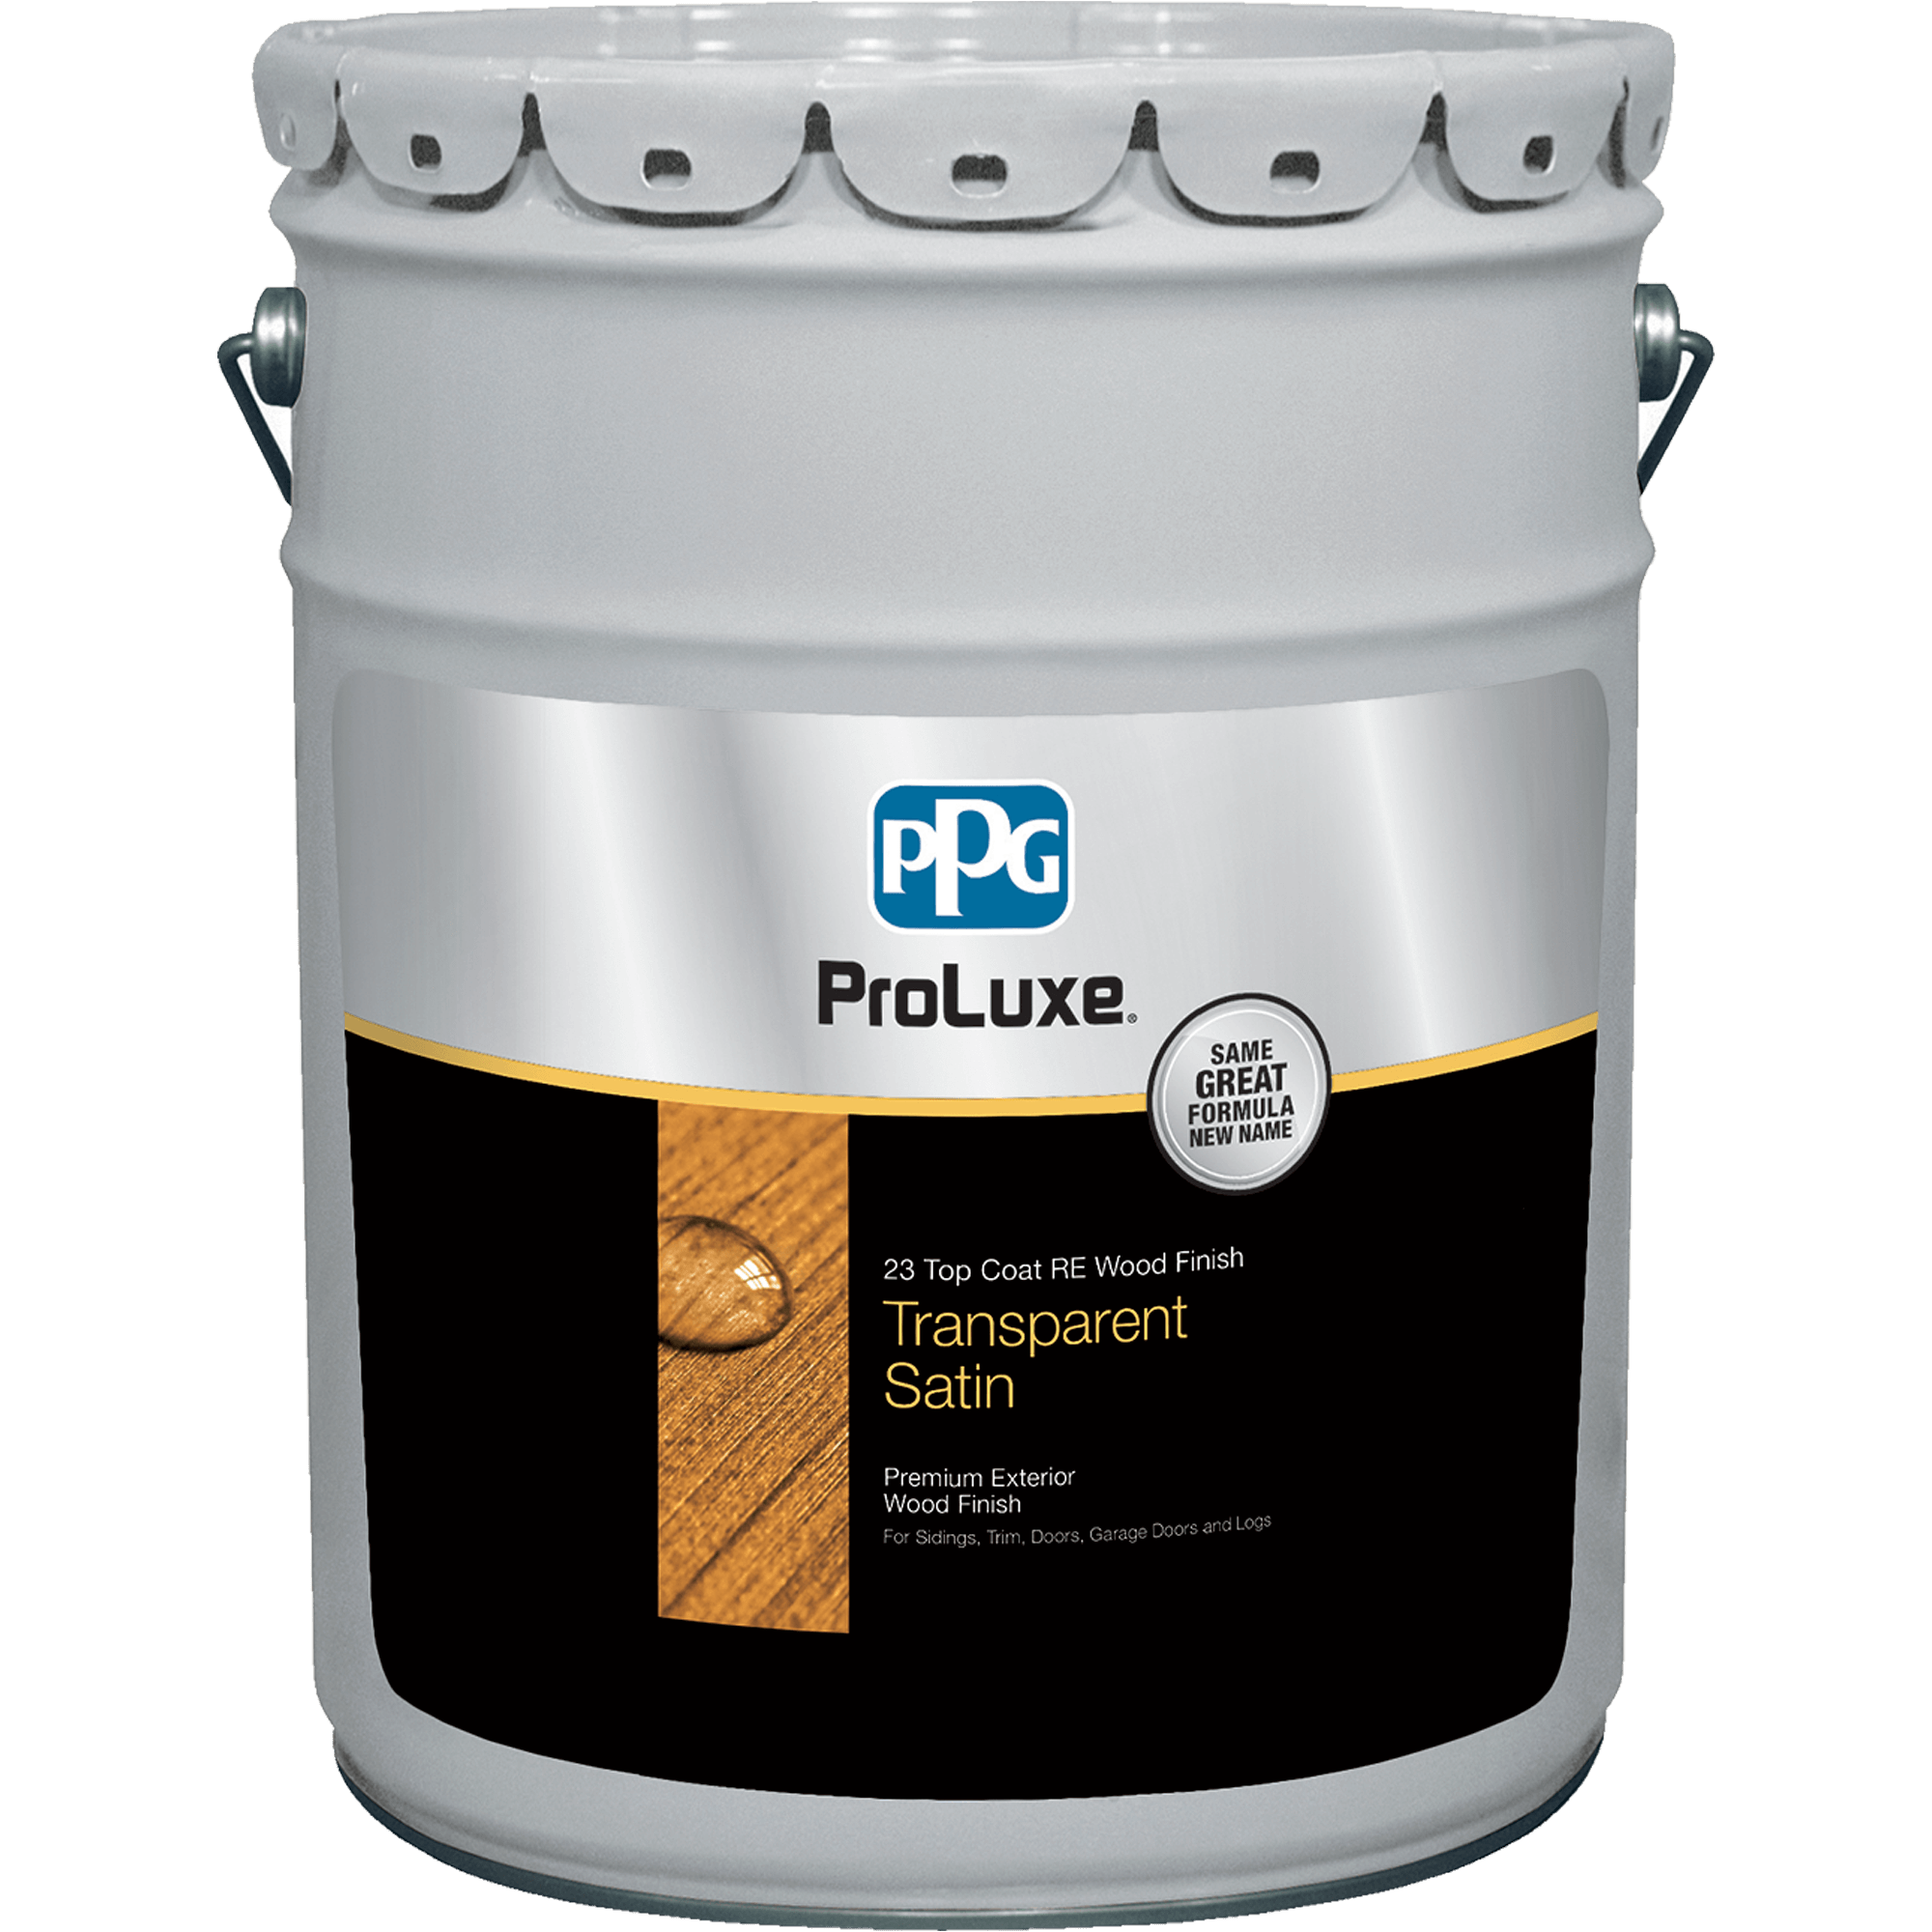 PROLUXE<sup>®</sup> 23 Top Coat RE Wood Finish 5 Gallon